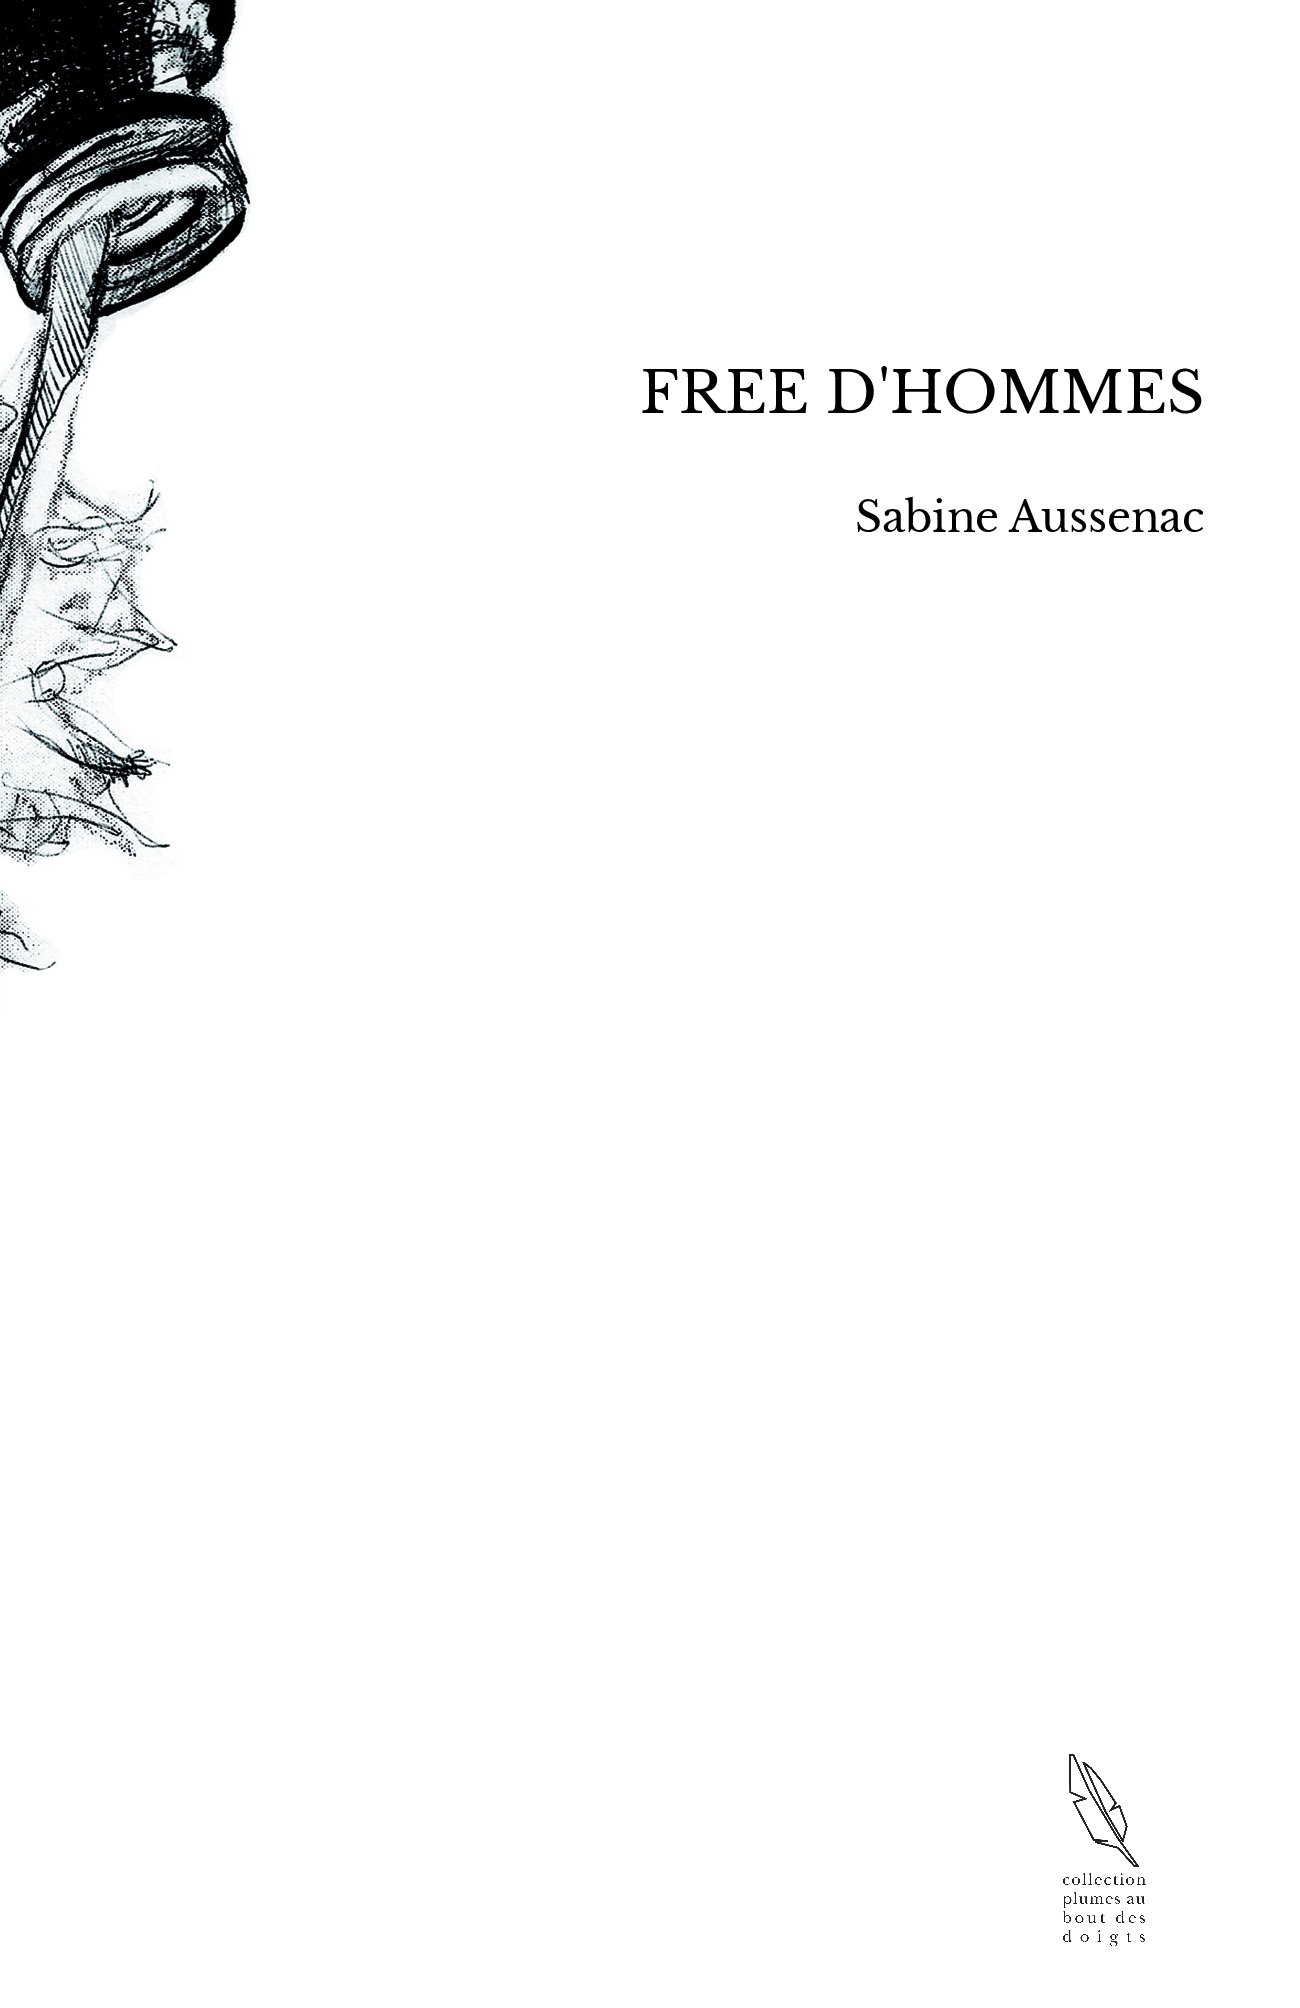 FREE D'HOMMES